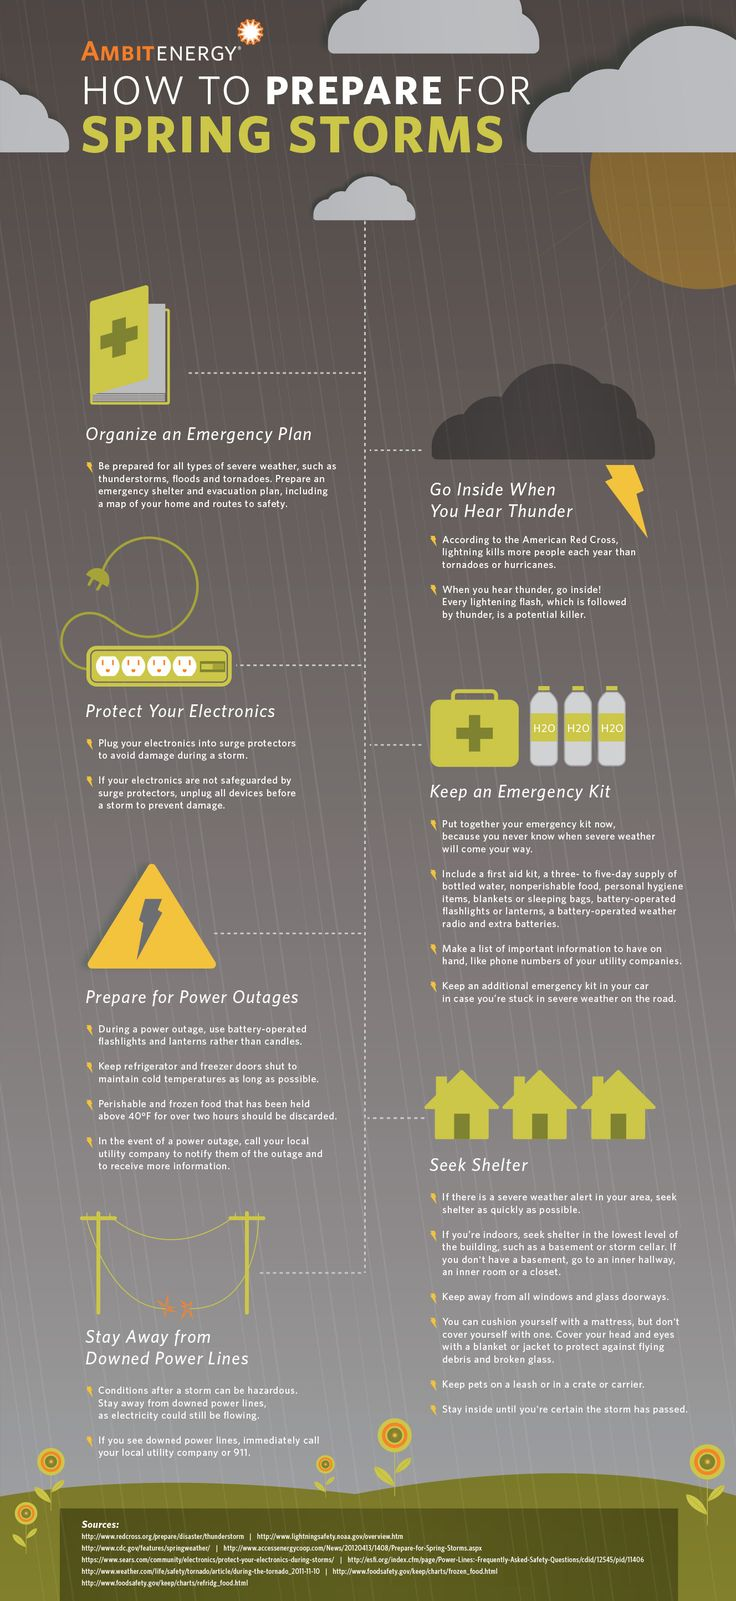 How to Prepare for Spring Storms #Infographic.Spring is a time of year when unpredictable weather can cause severe problems. Especially if you live in areas that are prone to thunderstorms, tornadoes or flooding, being prepared is the key to ensuring your safety during and after a storm.